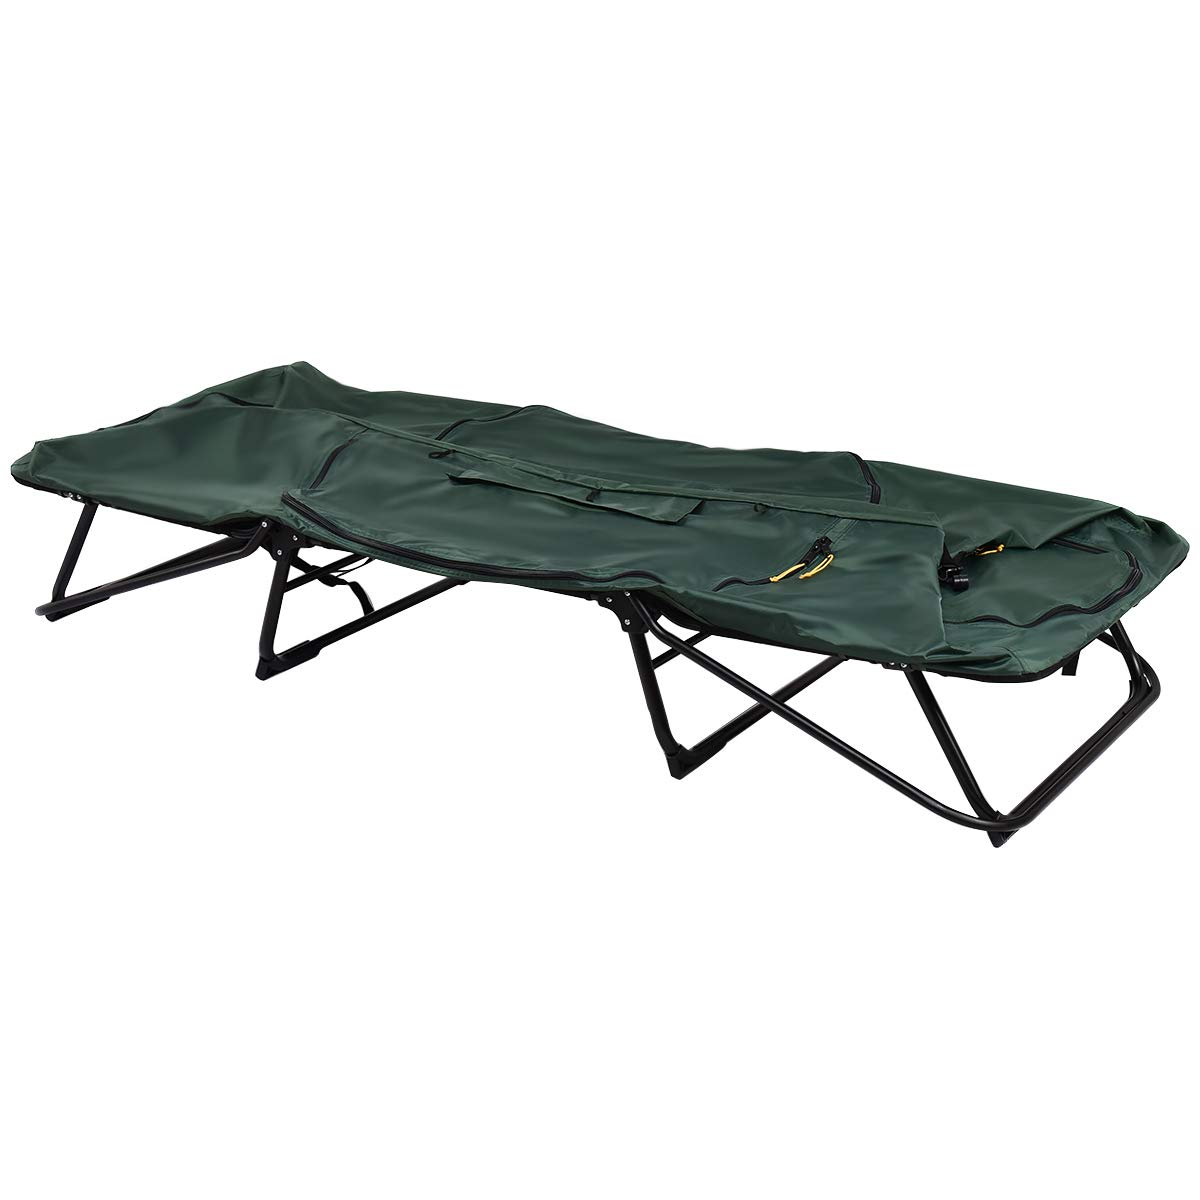 GYMAX Tent Cot, 1 Person Foldable Camping Waterproof Shelter with Window Carry Bag by GYMAX (Image #4)